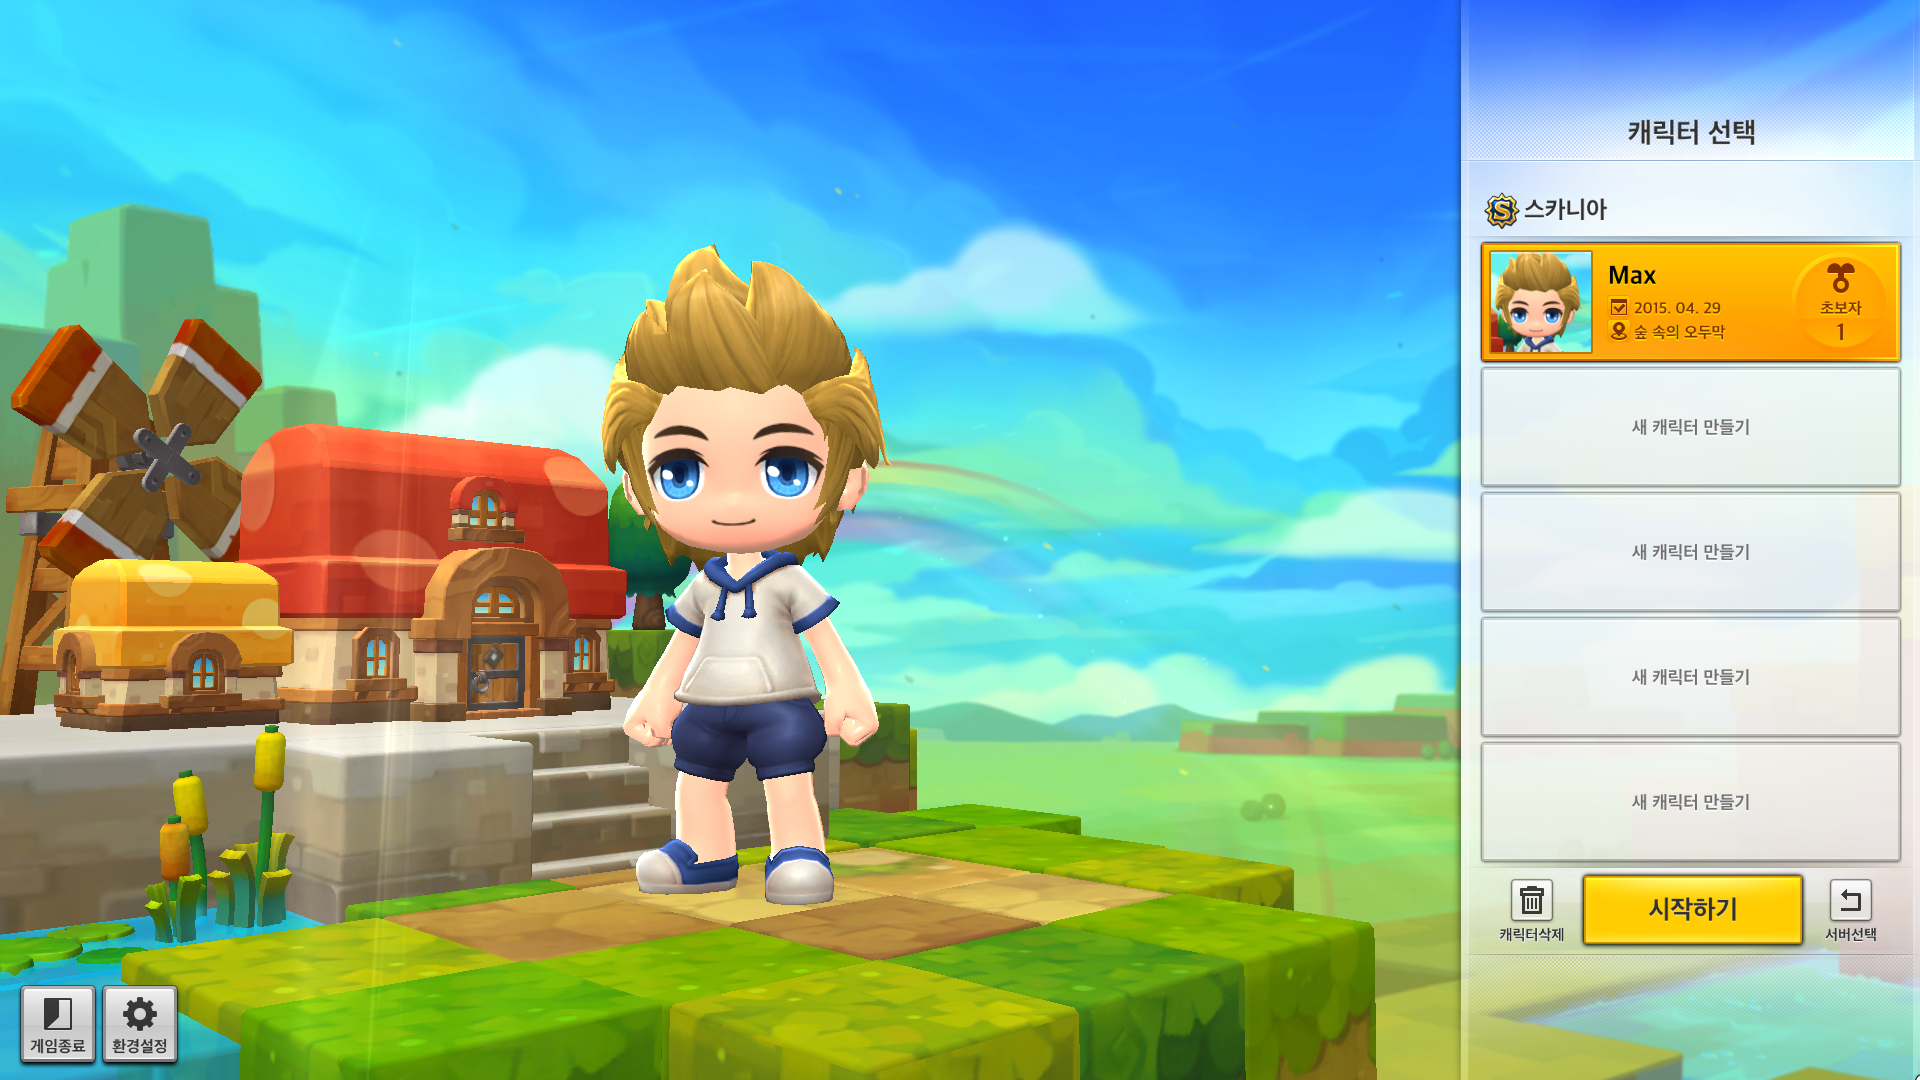 maplestory 2 final test early character creation orange